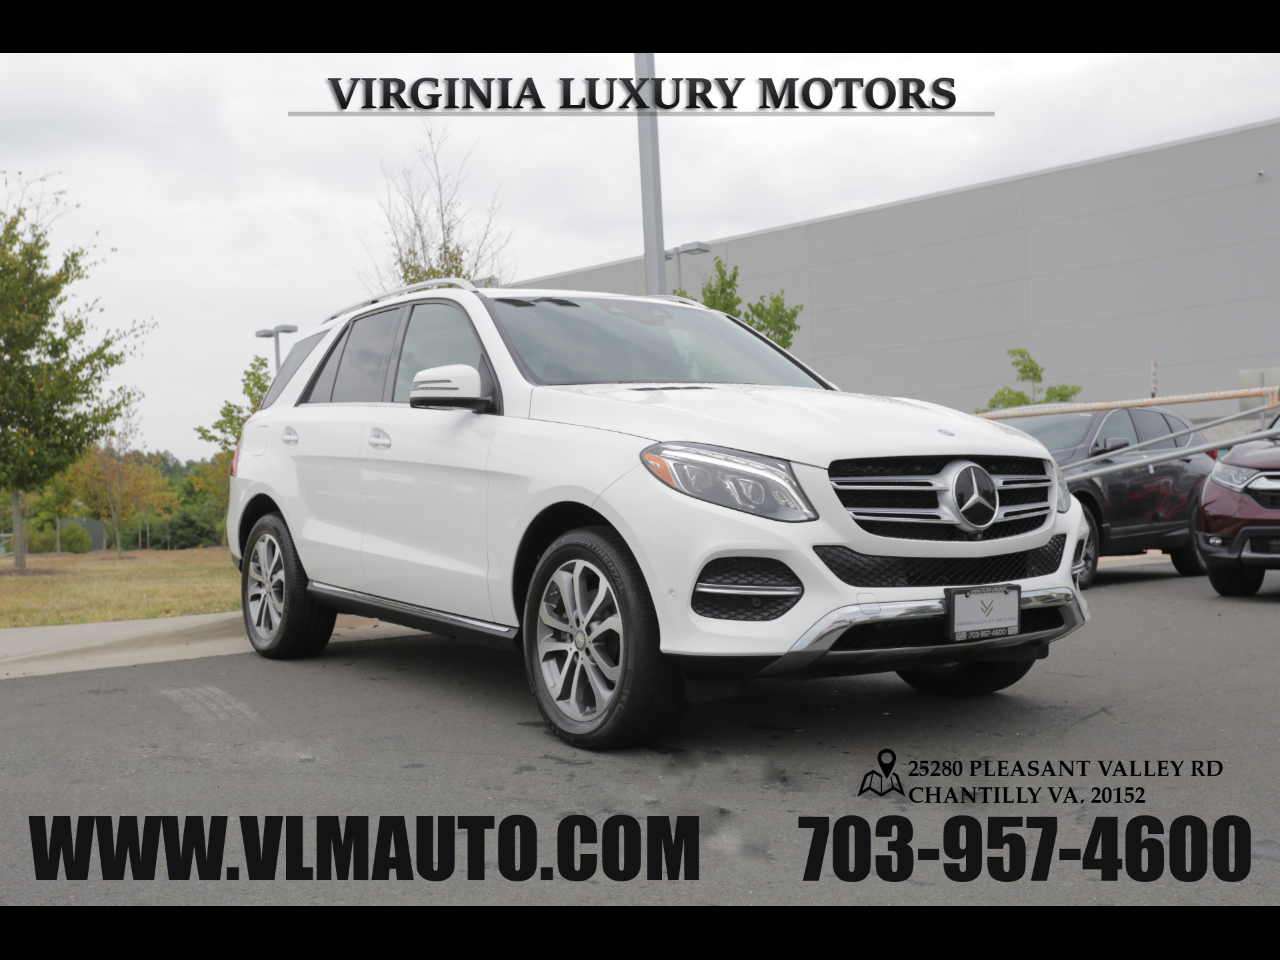 Pleasant Valley Motors >> Virginia Luxury Motors Chantilly Va New Used Cars Trucks